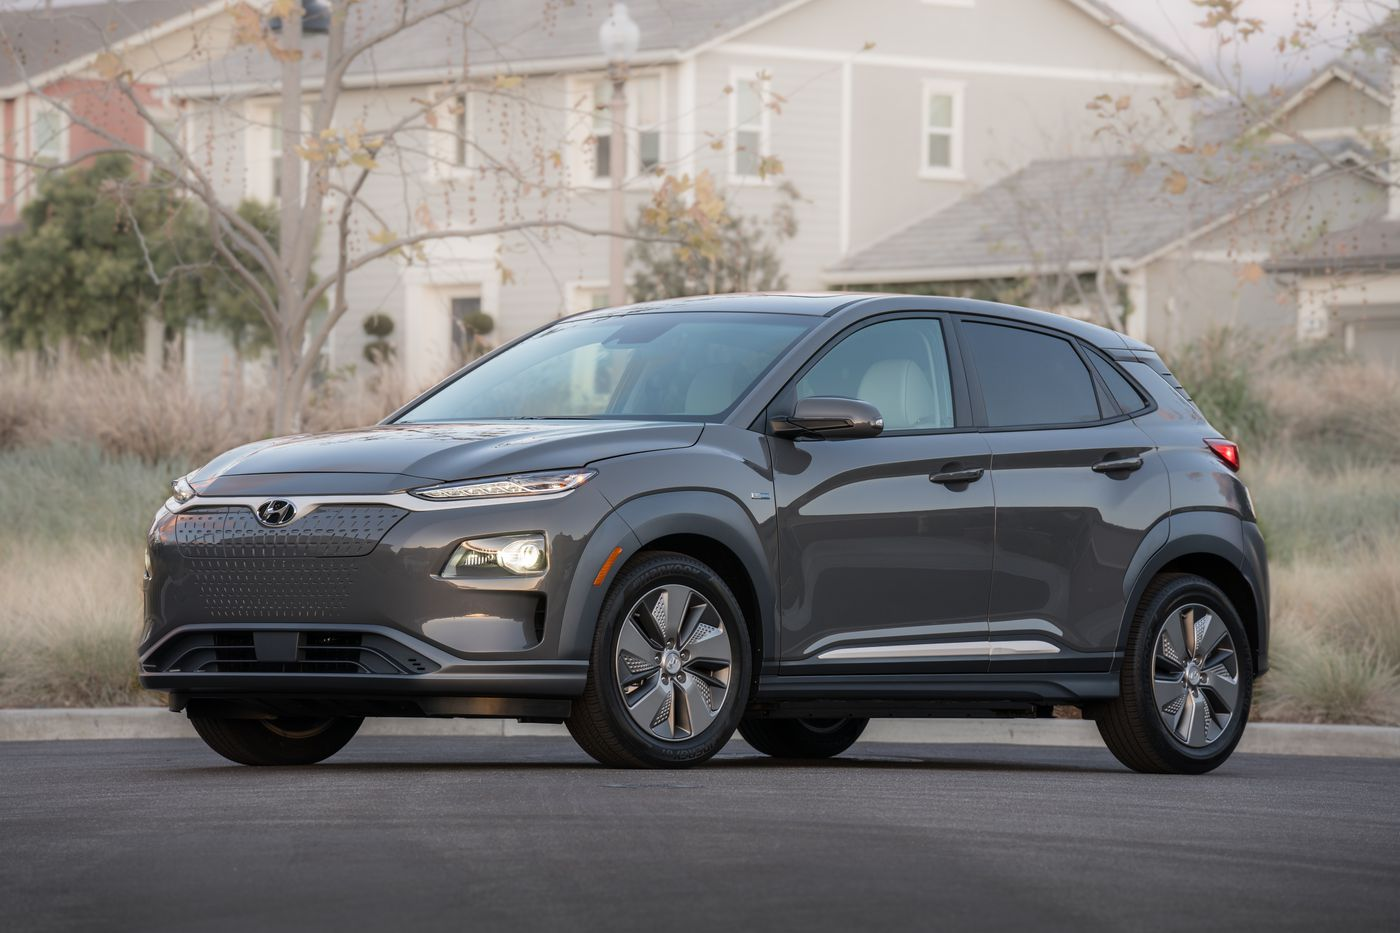 Hyundai's Kona EV has great range and costs as much as the average